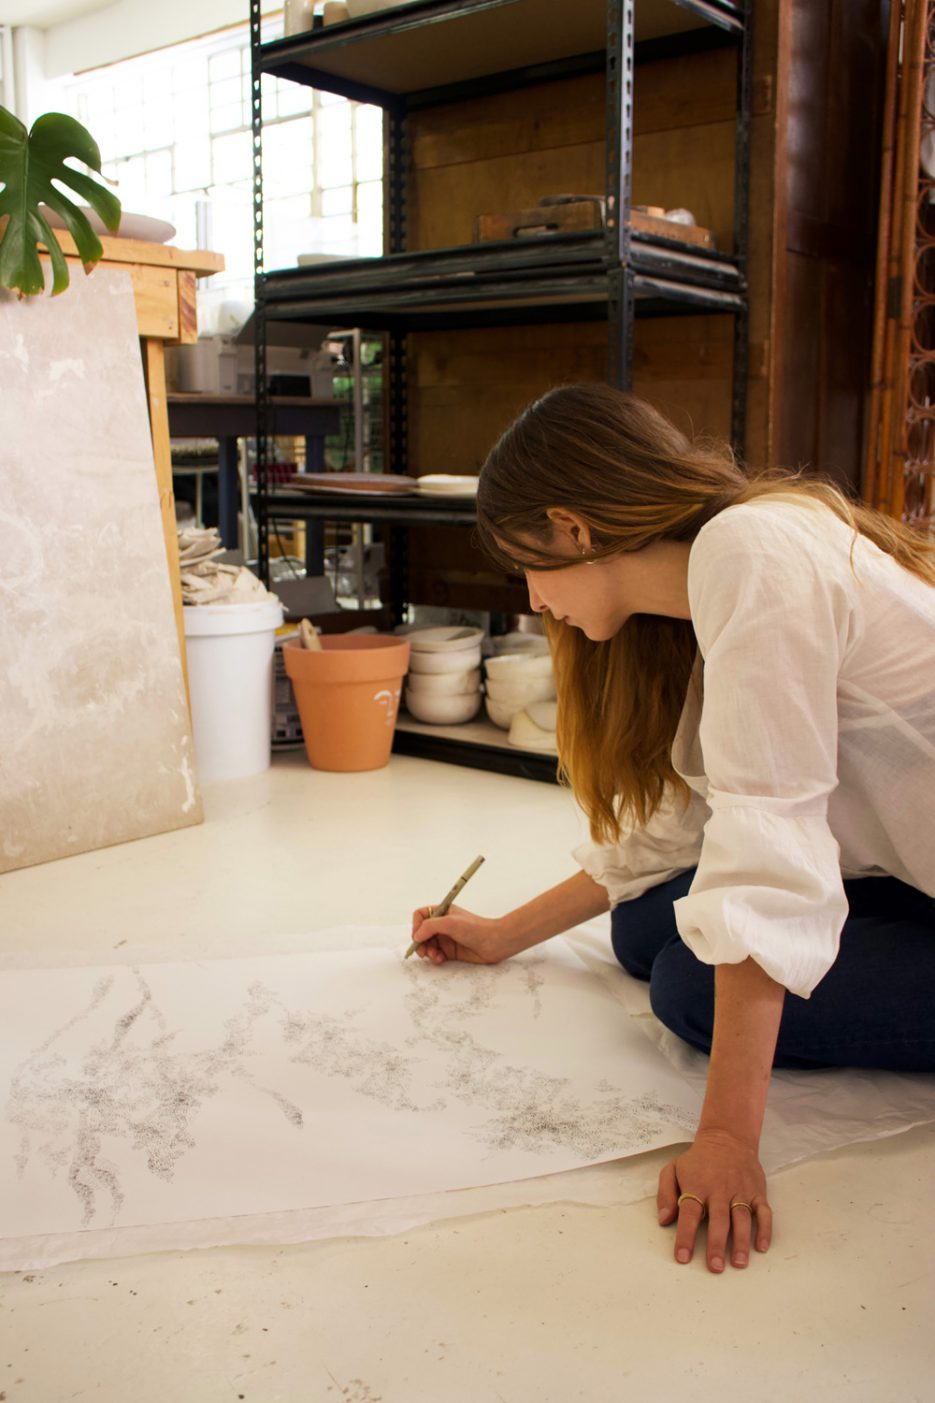 Amor Coetzee of Dayfeels illustrating in her Cape Town studio. Image by Amber Rose Cowie.